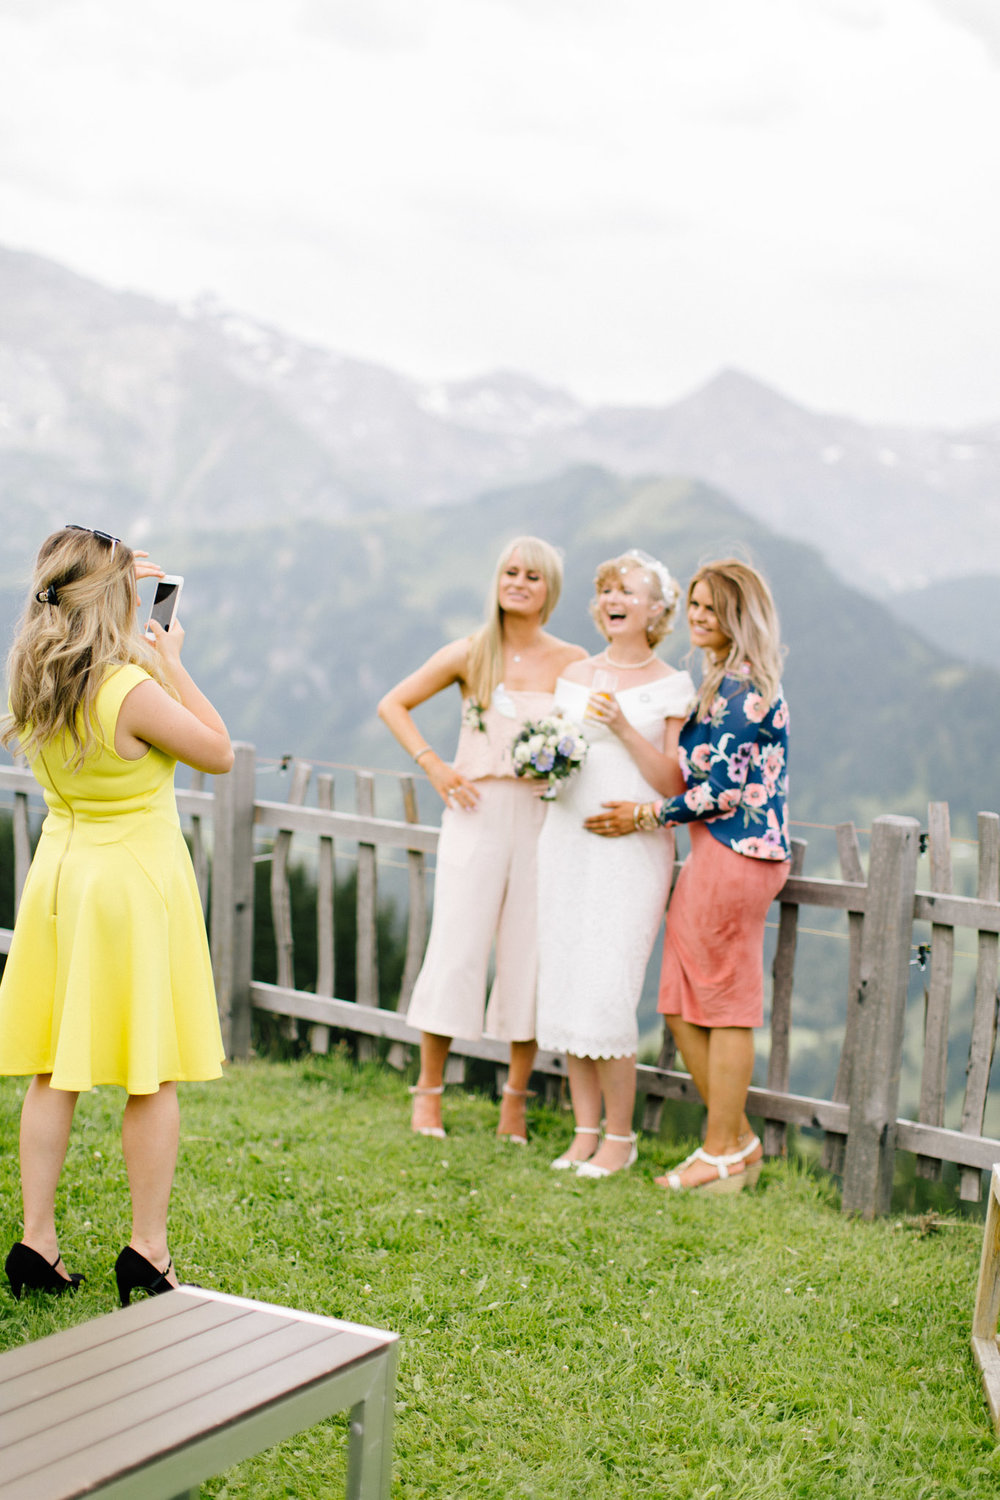 Lenl-Simmental-Buehlerhof-Pia-Anna-Christian-Wedding-Photography-EK-69.jpg